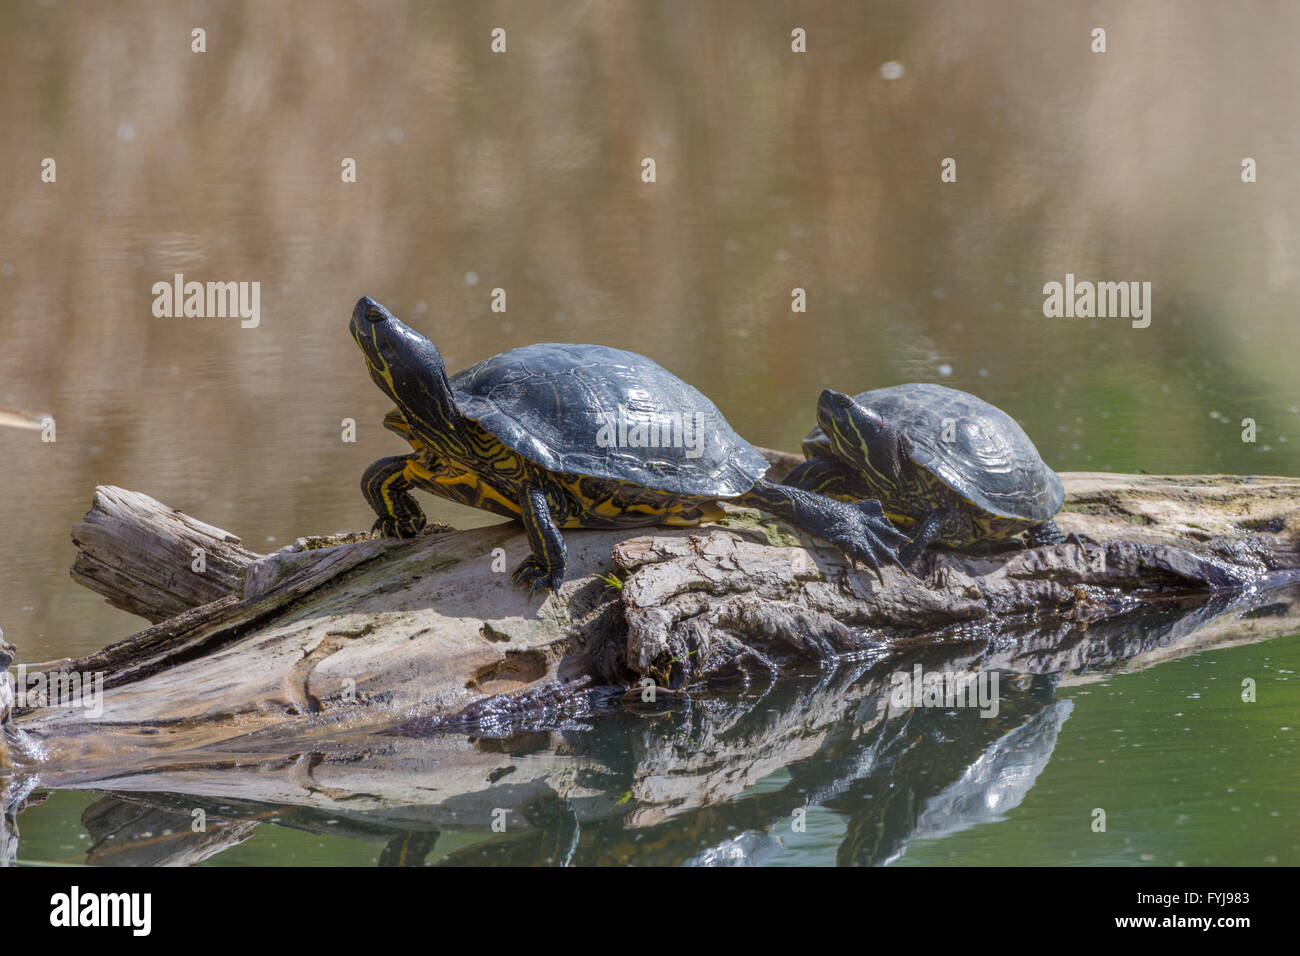 Adult Red-eared Sliders, (Trachemys scripta elegans), basking at Tingley Beach, Albuquerque, New Mexico, USA. - Stock Image